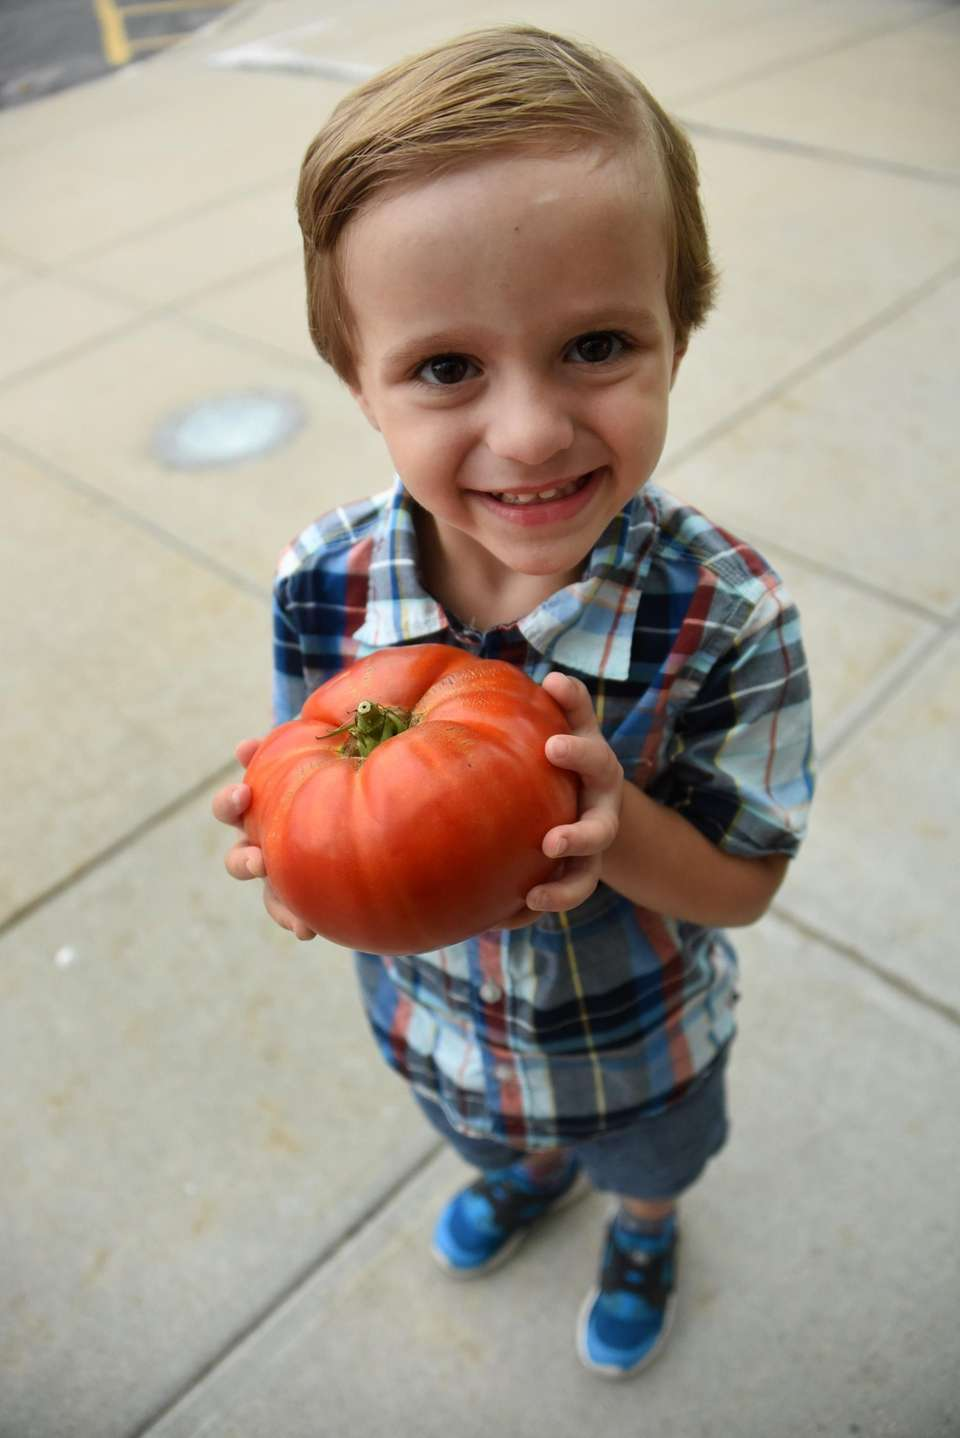 Wyatt DePace, 3, of Albertson, shows off his